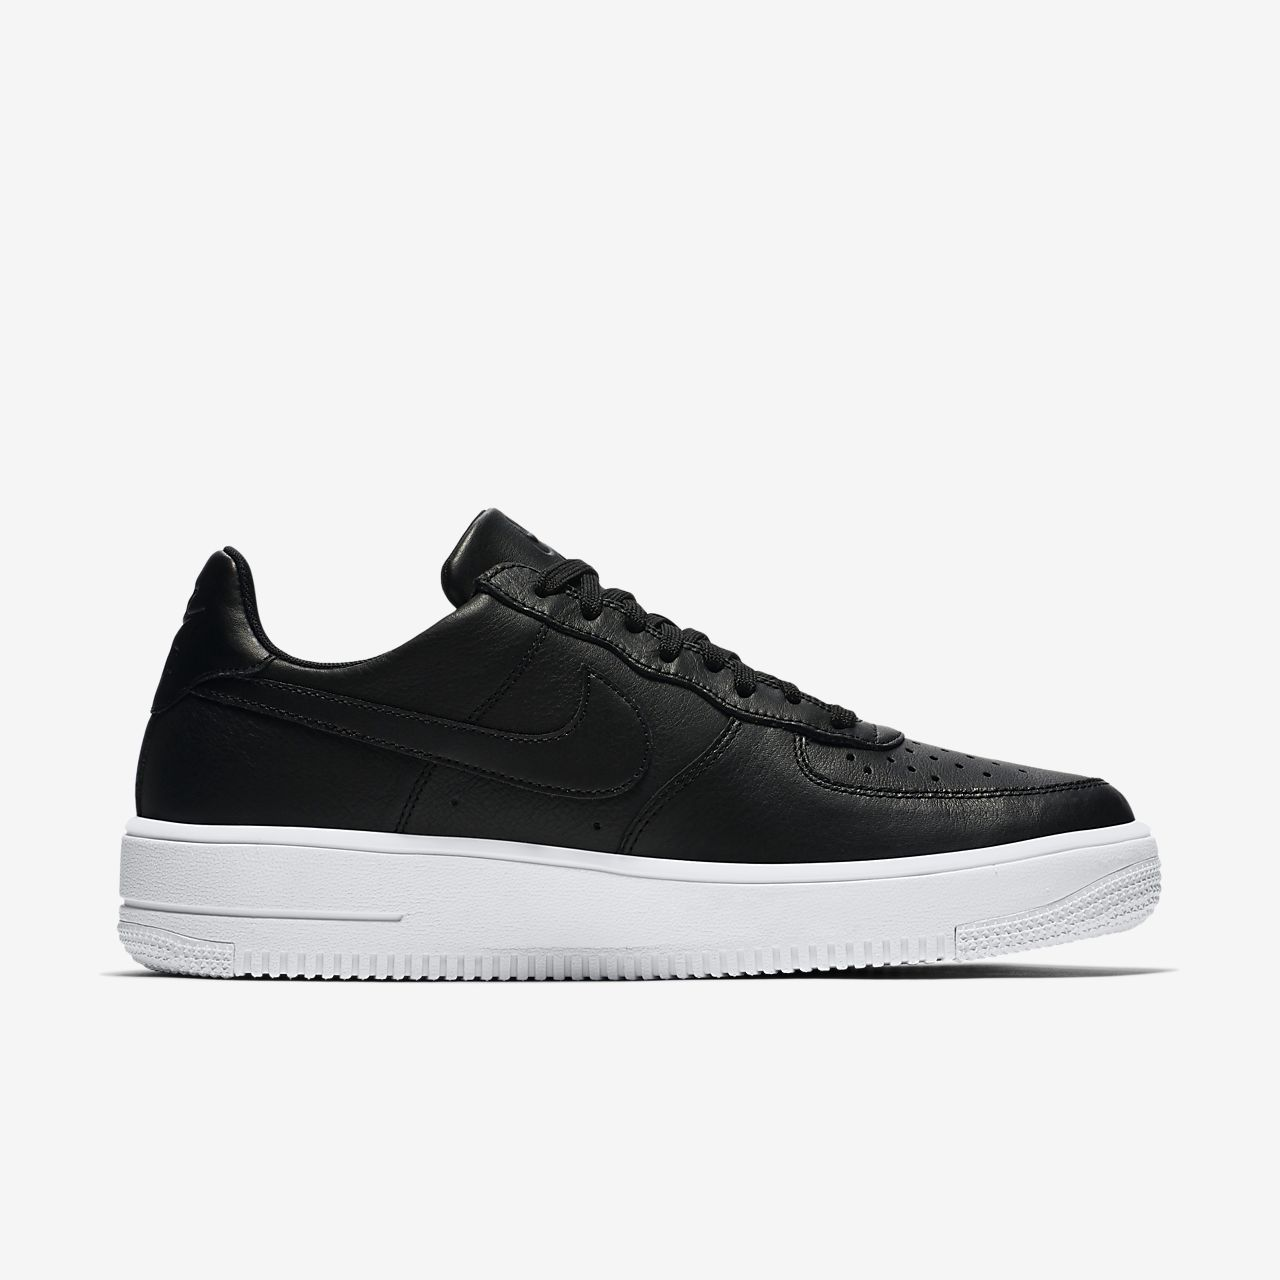 nike air force 1 black and white leather